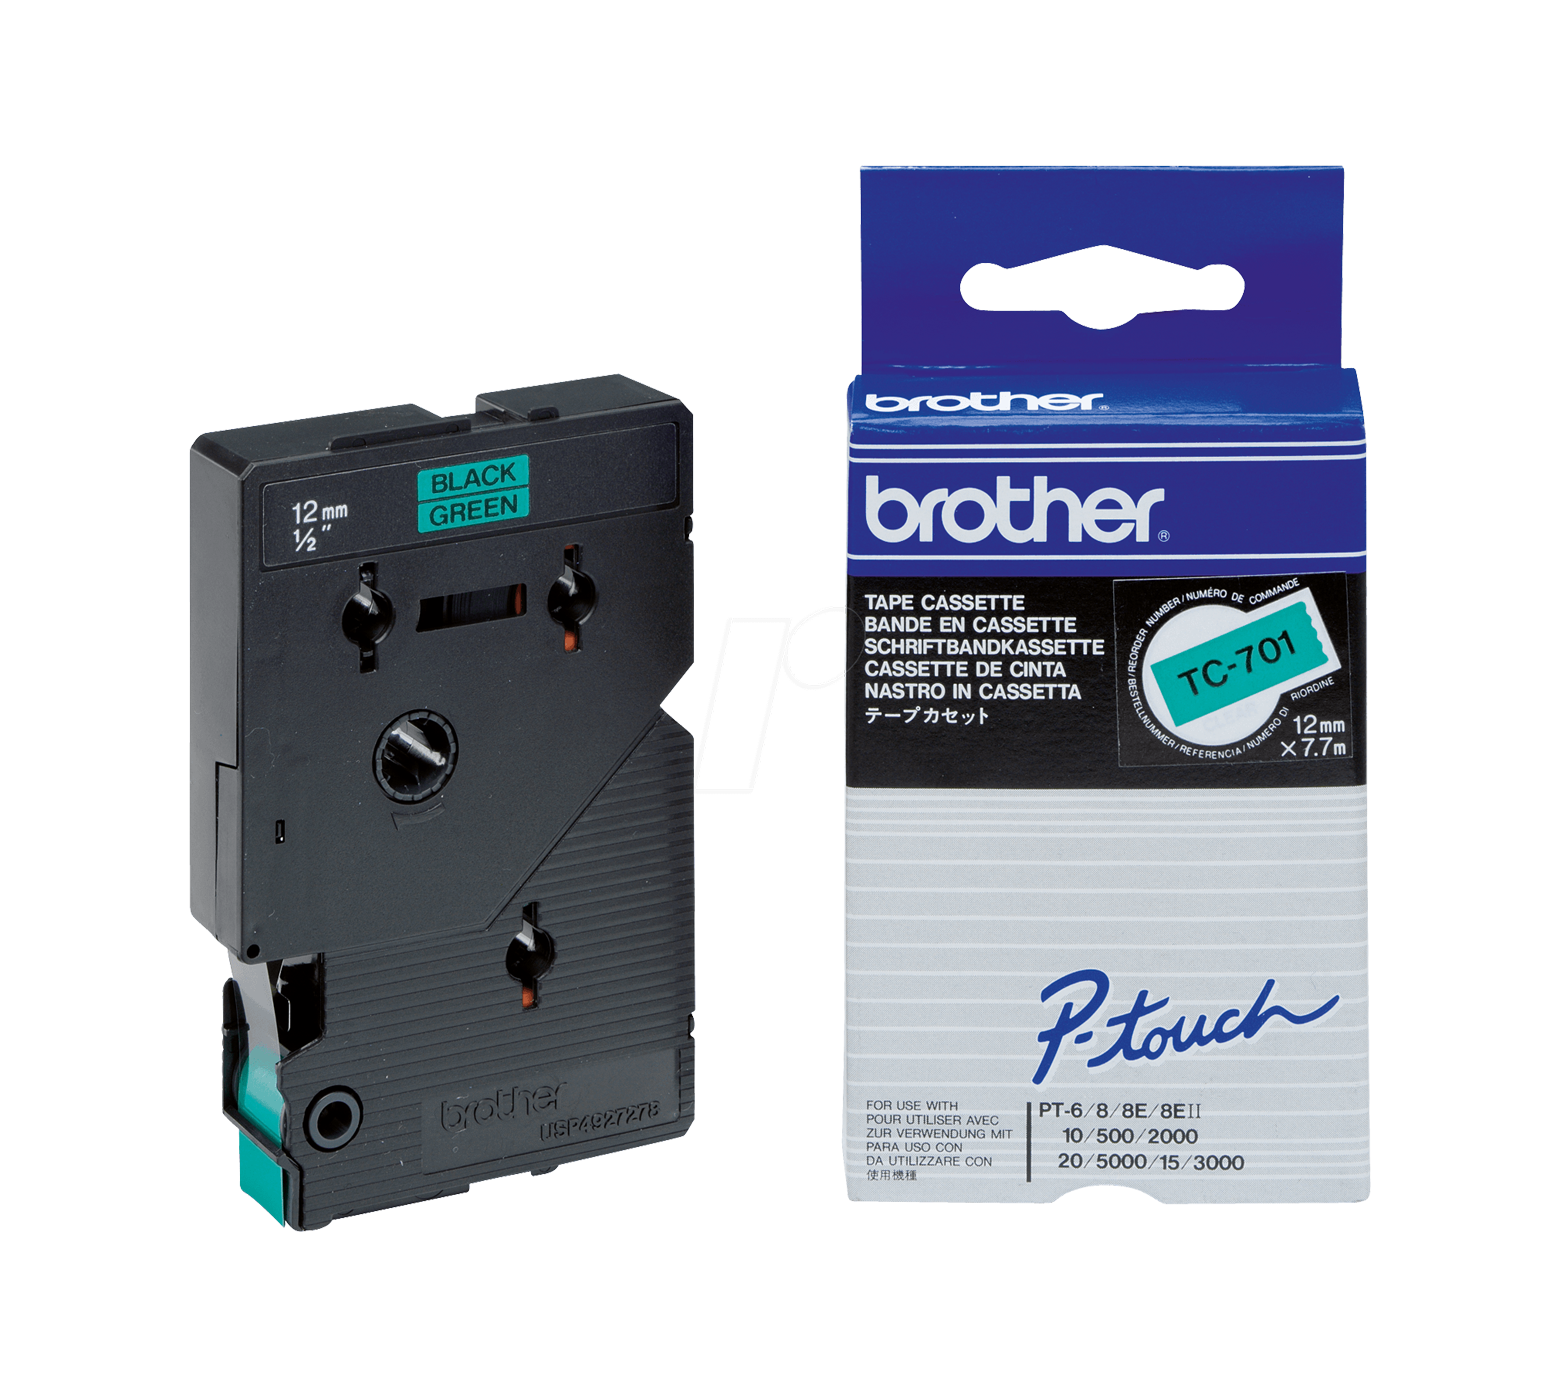 Brother Tc-701 Nastro Tc Nero / Verde #*